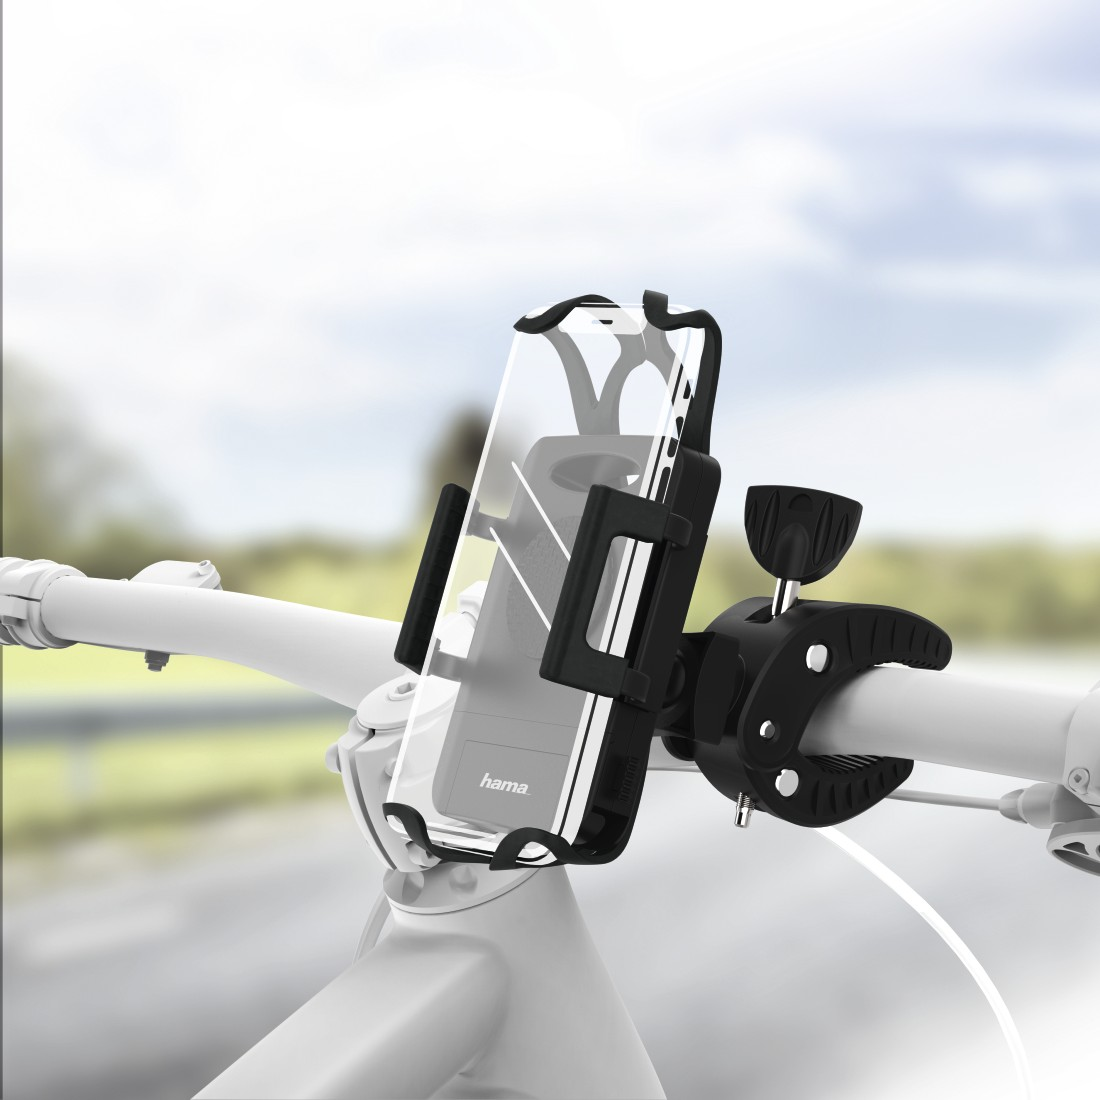 abx High-Res Image - Hama, Universal Smartphone Bike Holder for devices with a width between 5 to 9 cm